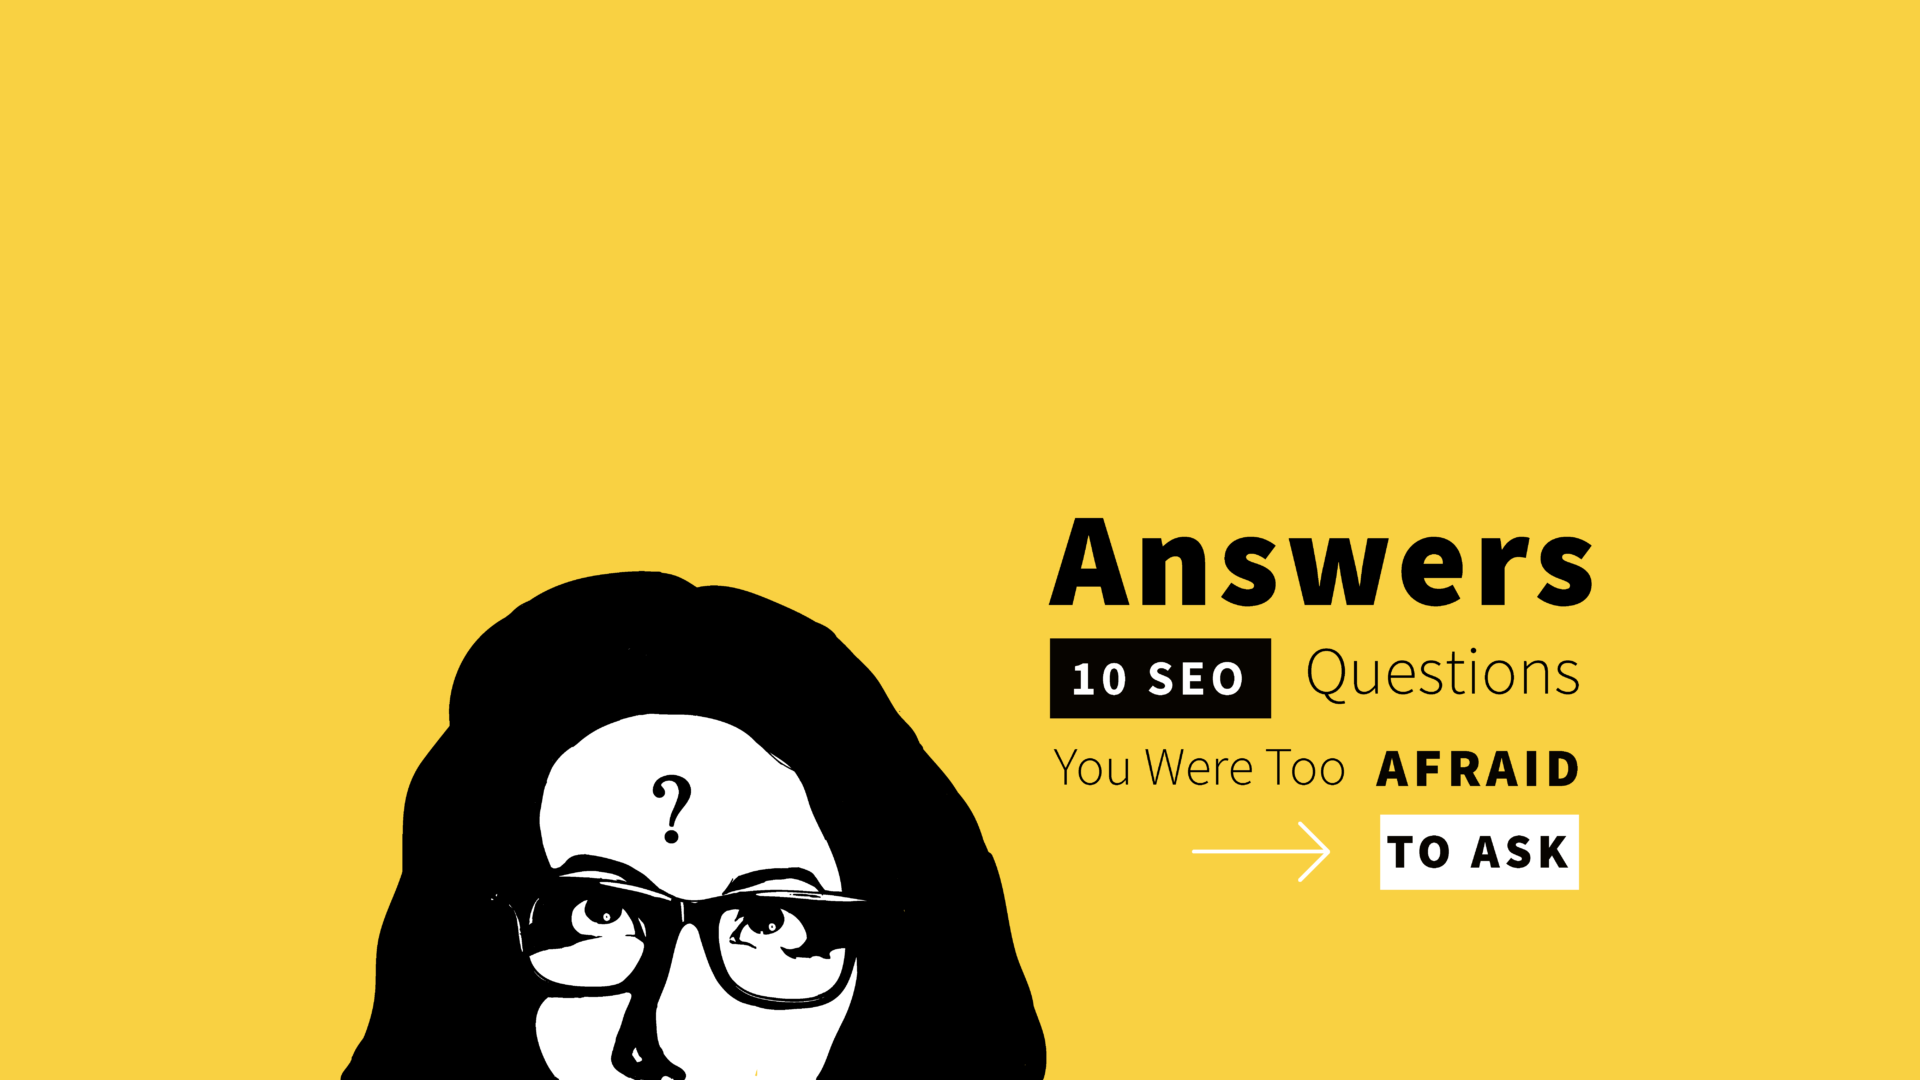 Answers to 10 SEO Questions You Might Have But Were Too Afraid to Ask Your CMO